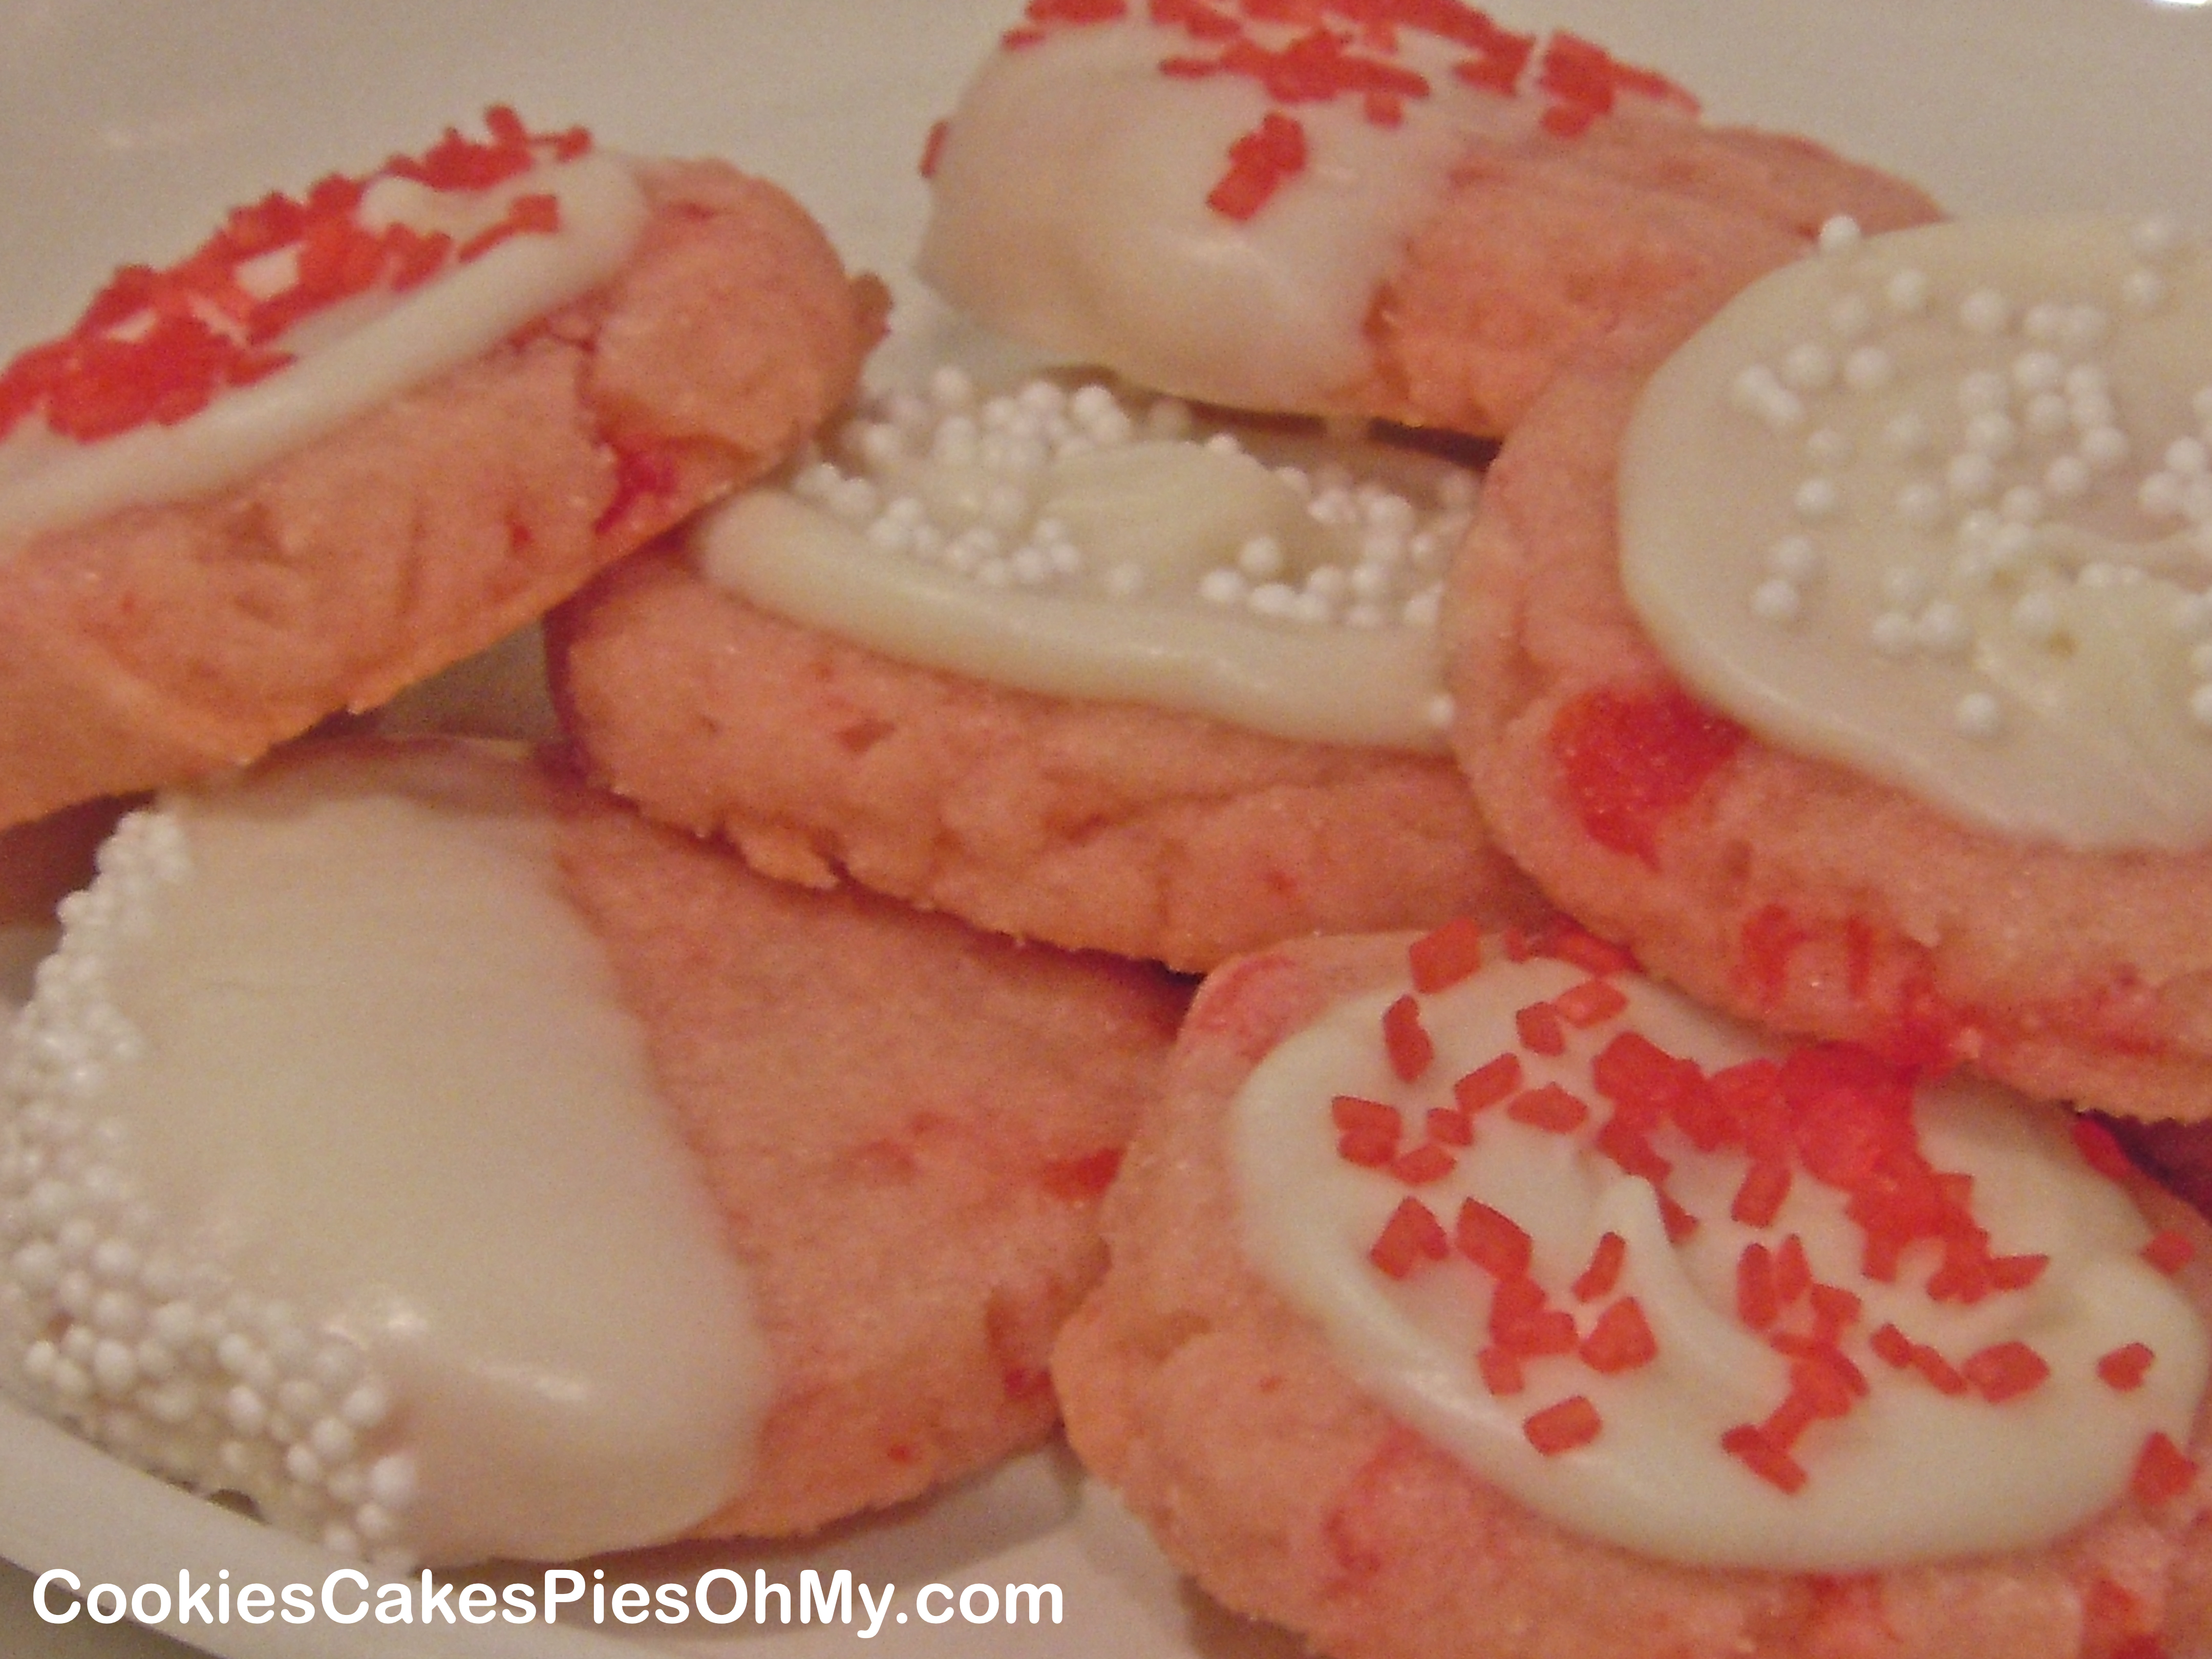 White Chocolate Cherry Shortbread Cookies | CookiesCakesPiesOhMy